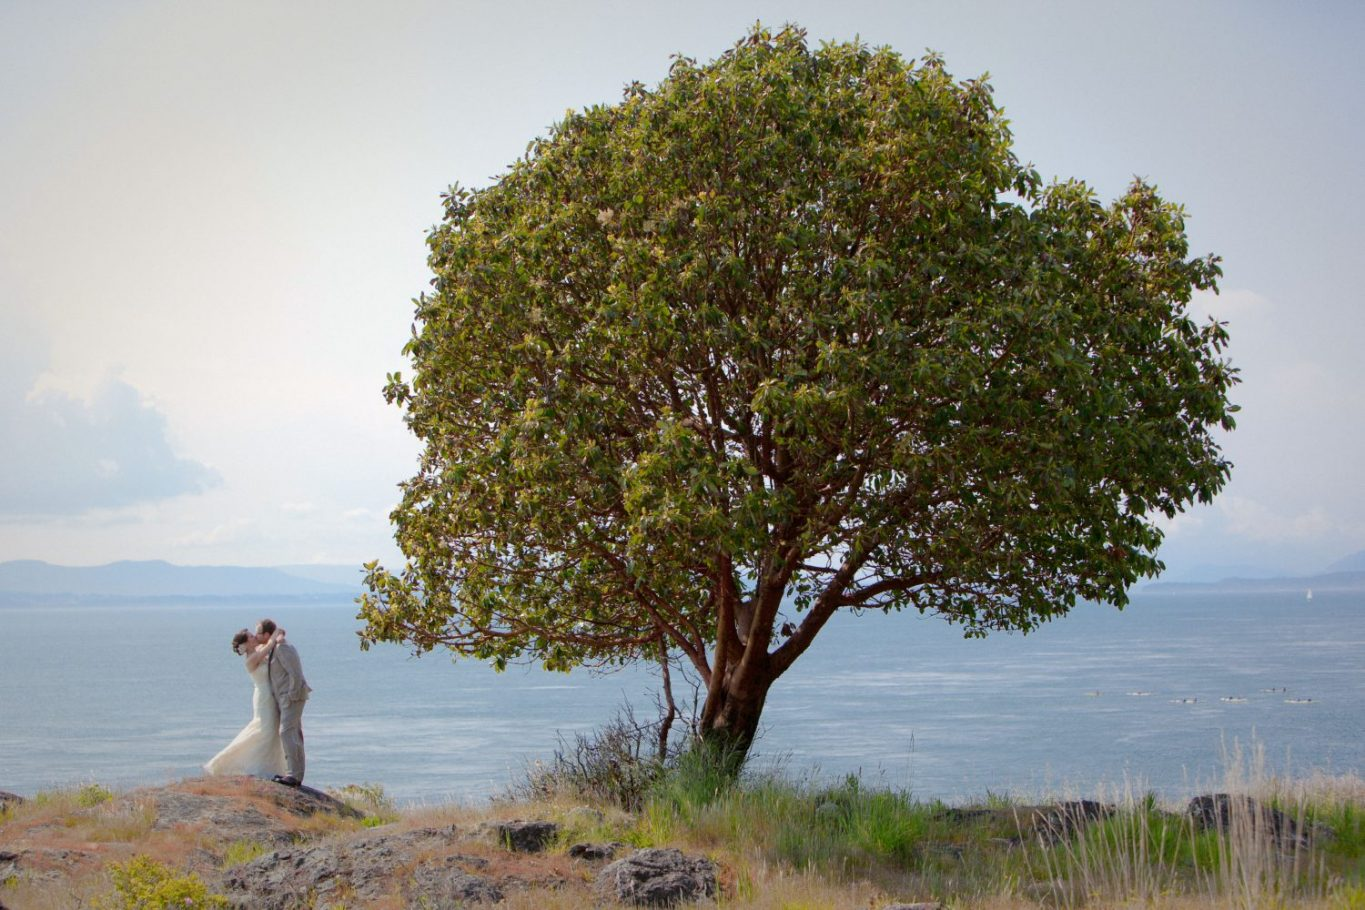 san-juan-island-wedding-photo-idea-big-tree-and-bride-groom